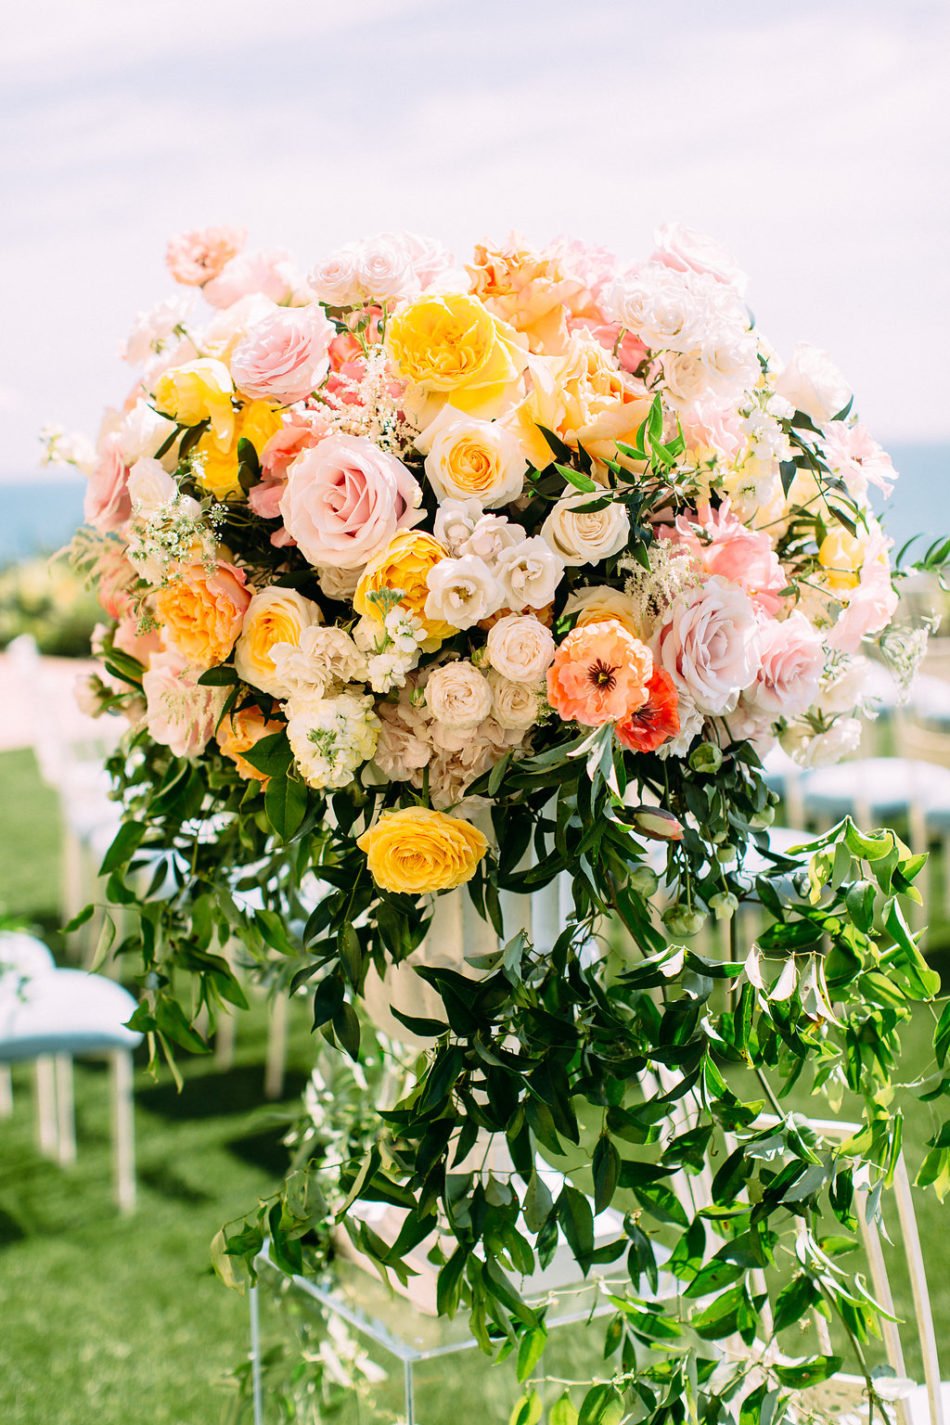 inside weddings feature, ceremony blooms, pink and orange florals, floral design, florist, wedding florist, wedding flowers, orange county weddings, orange county wedding florist, orange county florist, orange county floral design, flowers by cina